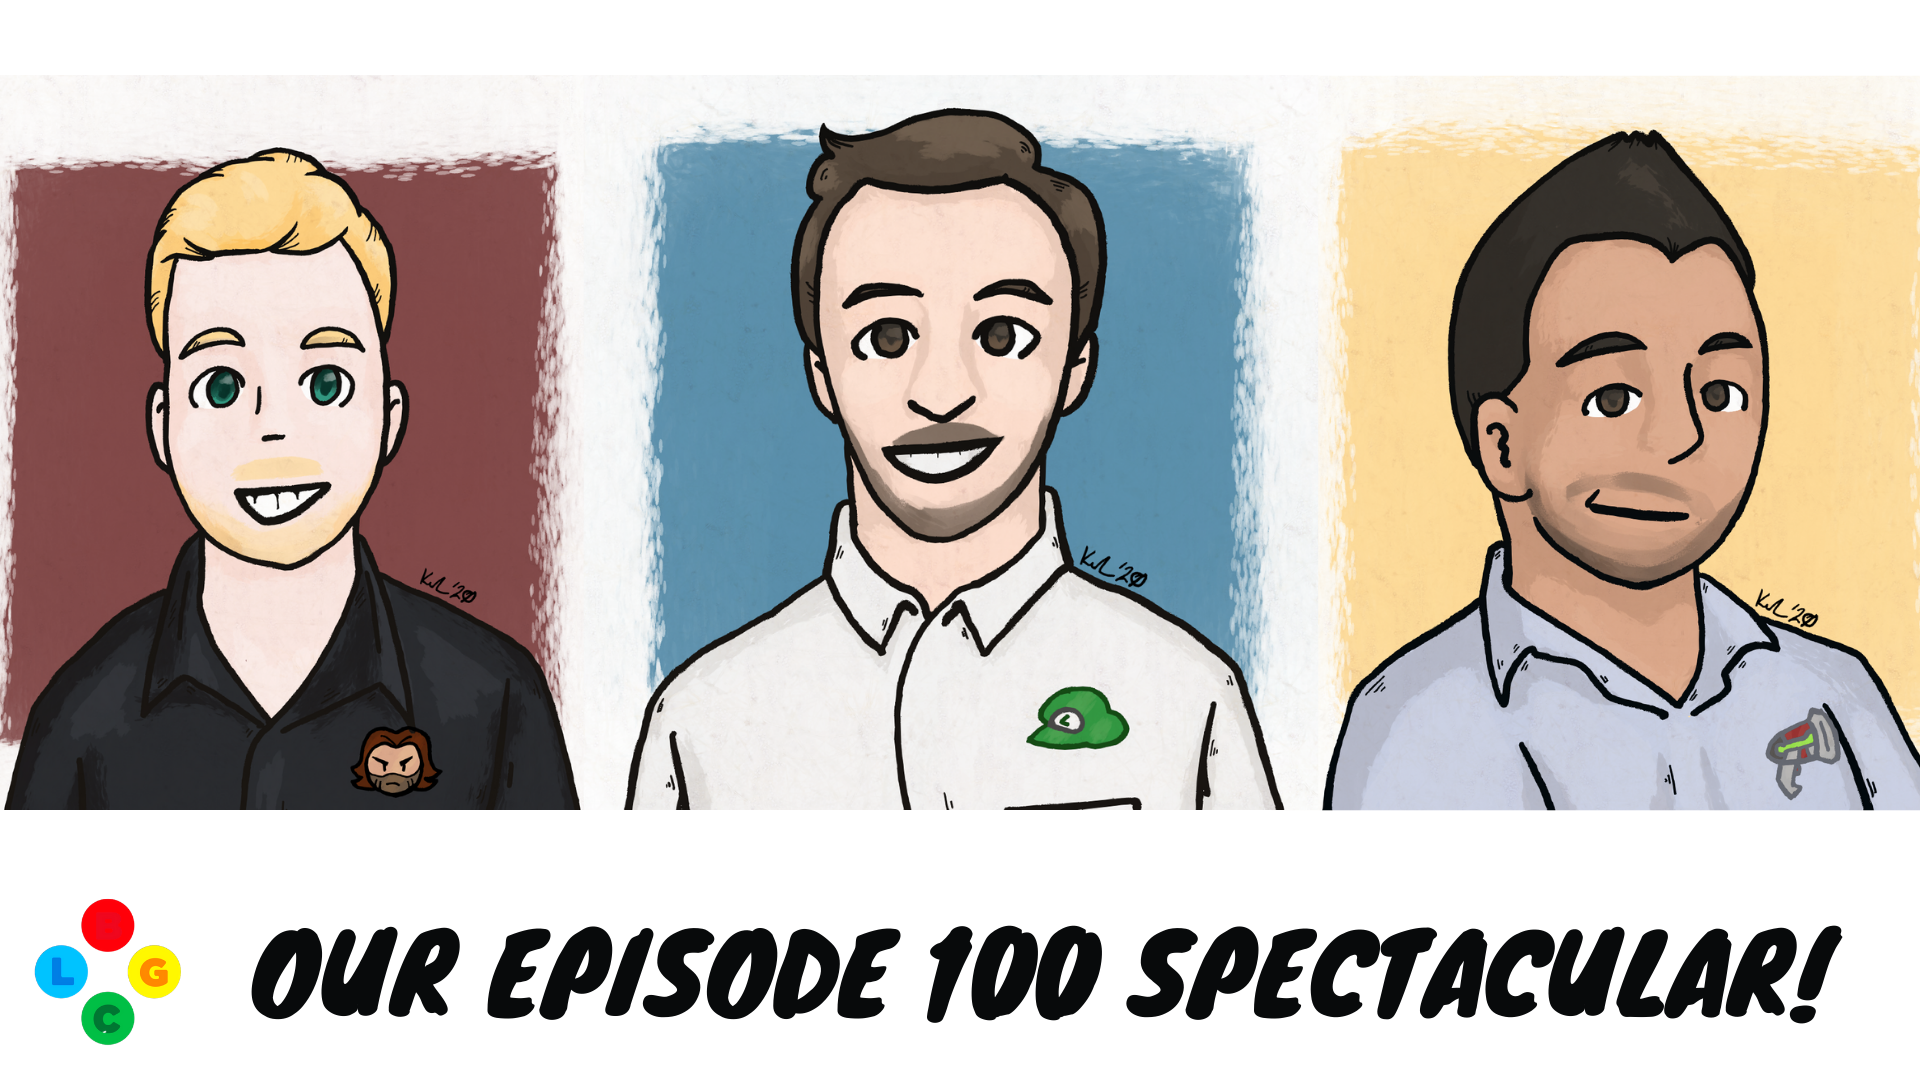 100: Our 100th Episode Extravaganza